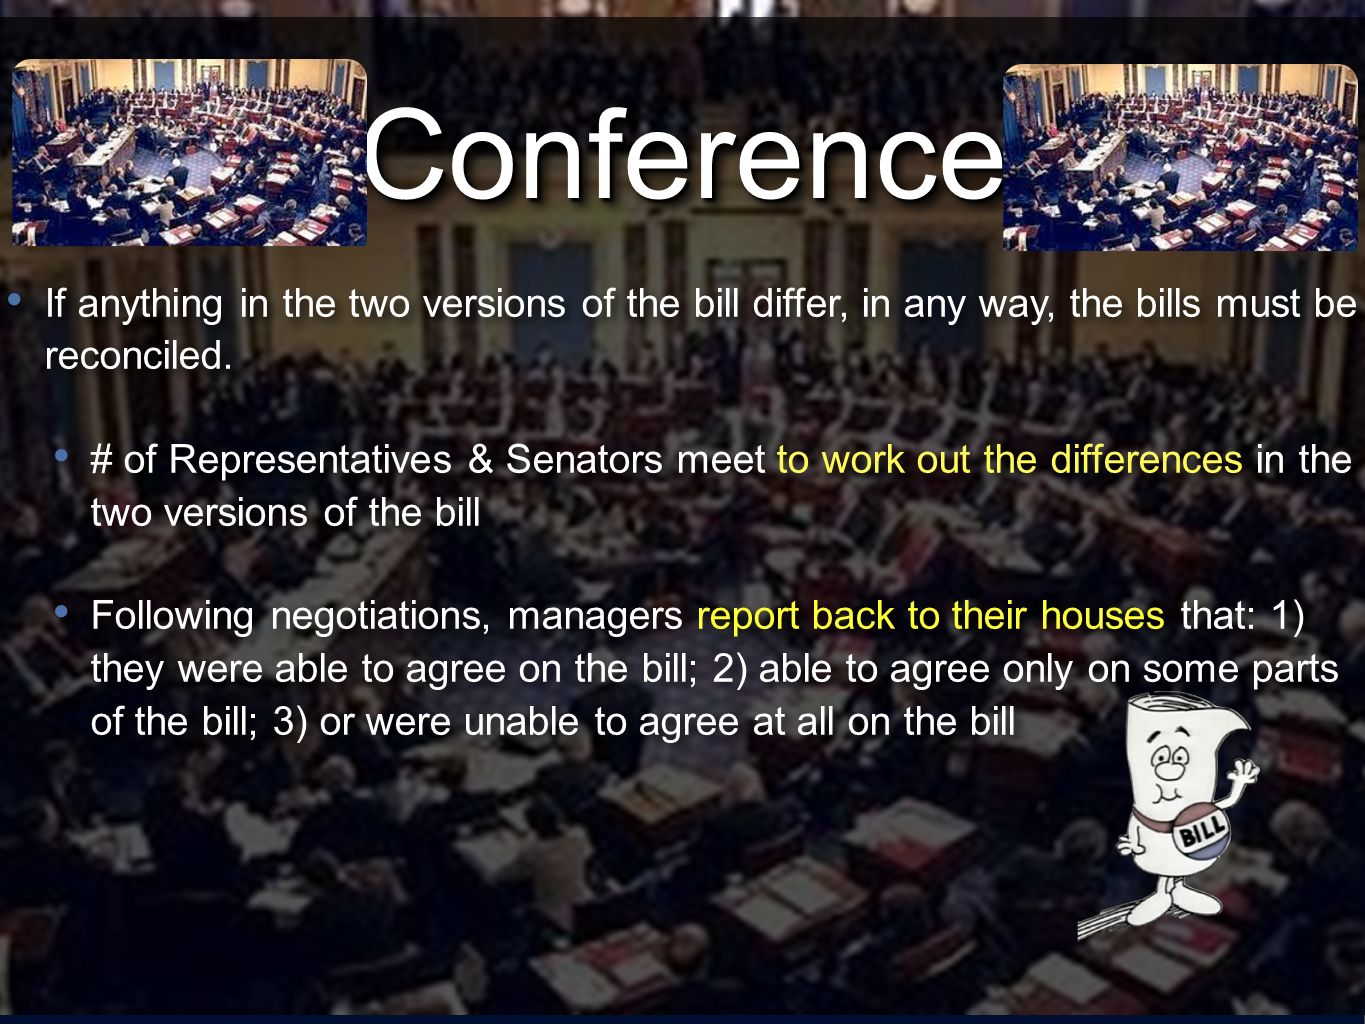 Conference If anything in the two versions of the bill differ, in any way, the bills must be reconciled.